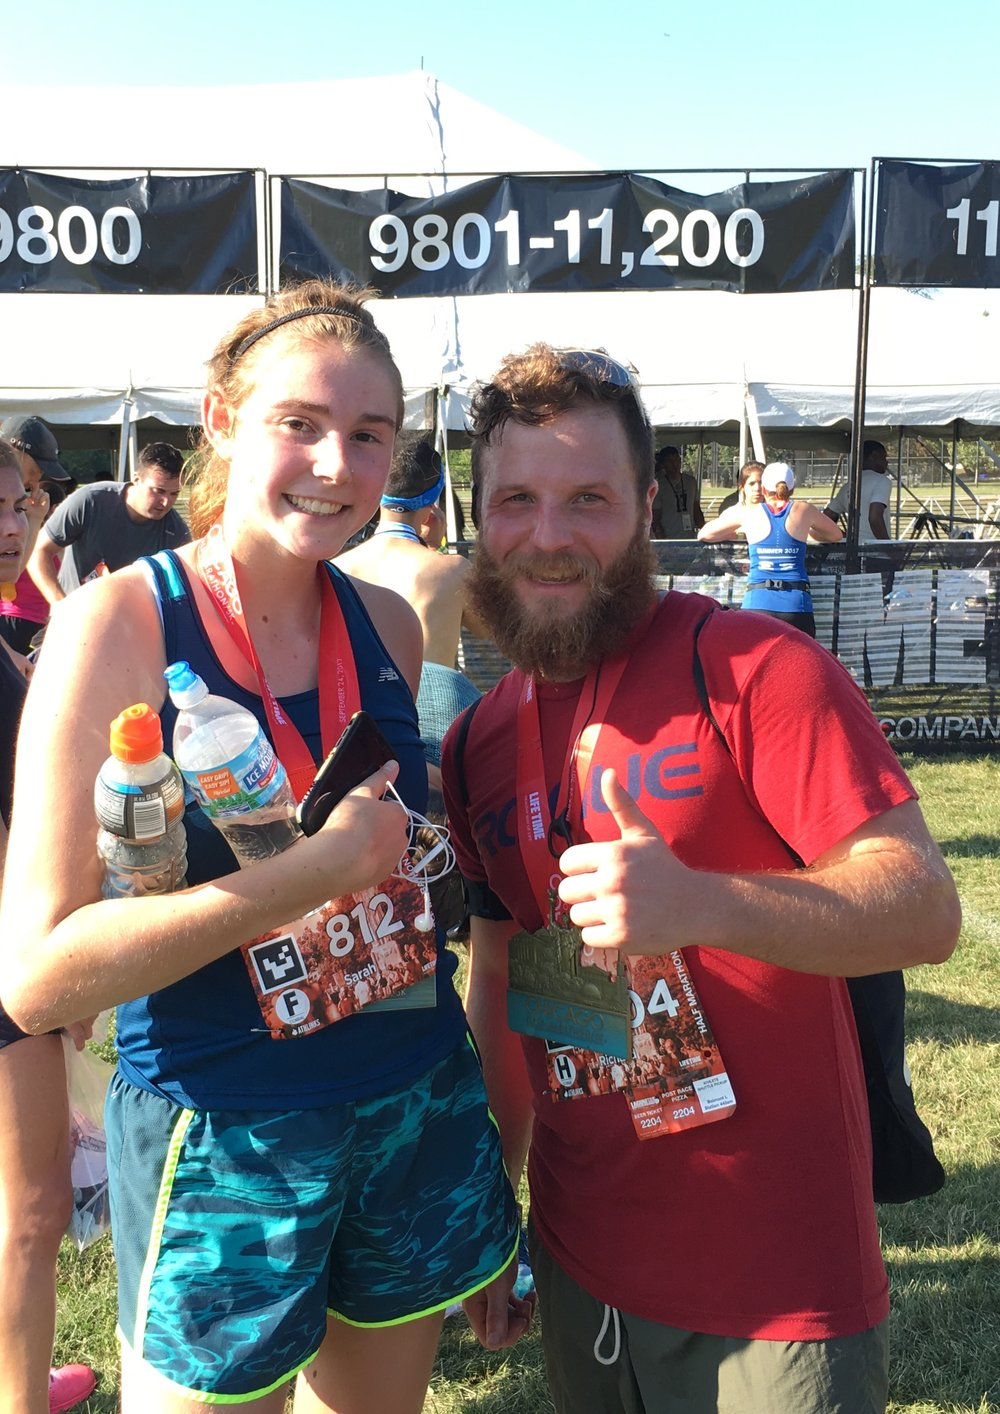 DePaul University students, Sarah Hamilton and Richard Lawson, at the finish line of the 2017 First Annual Starfish Dash fundraiser.